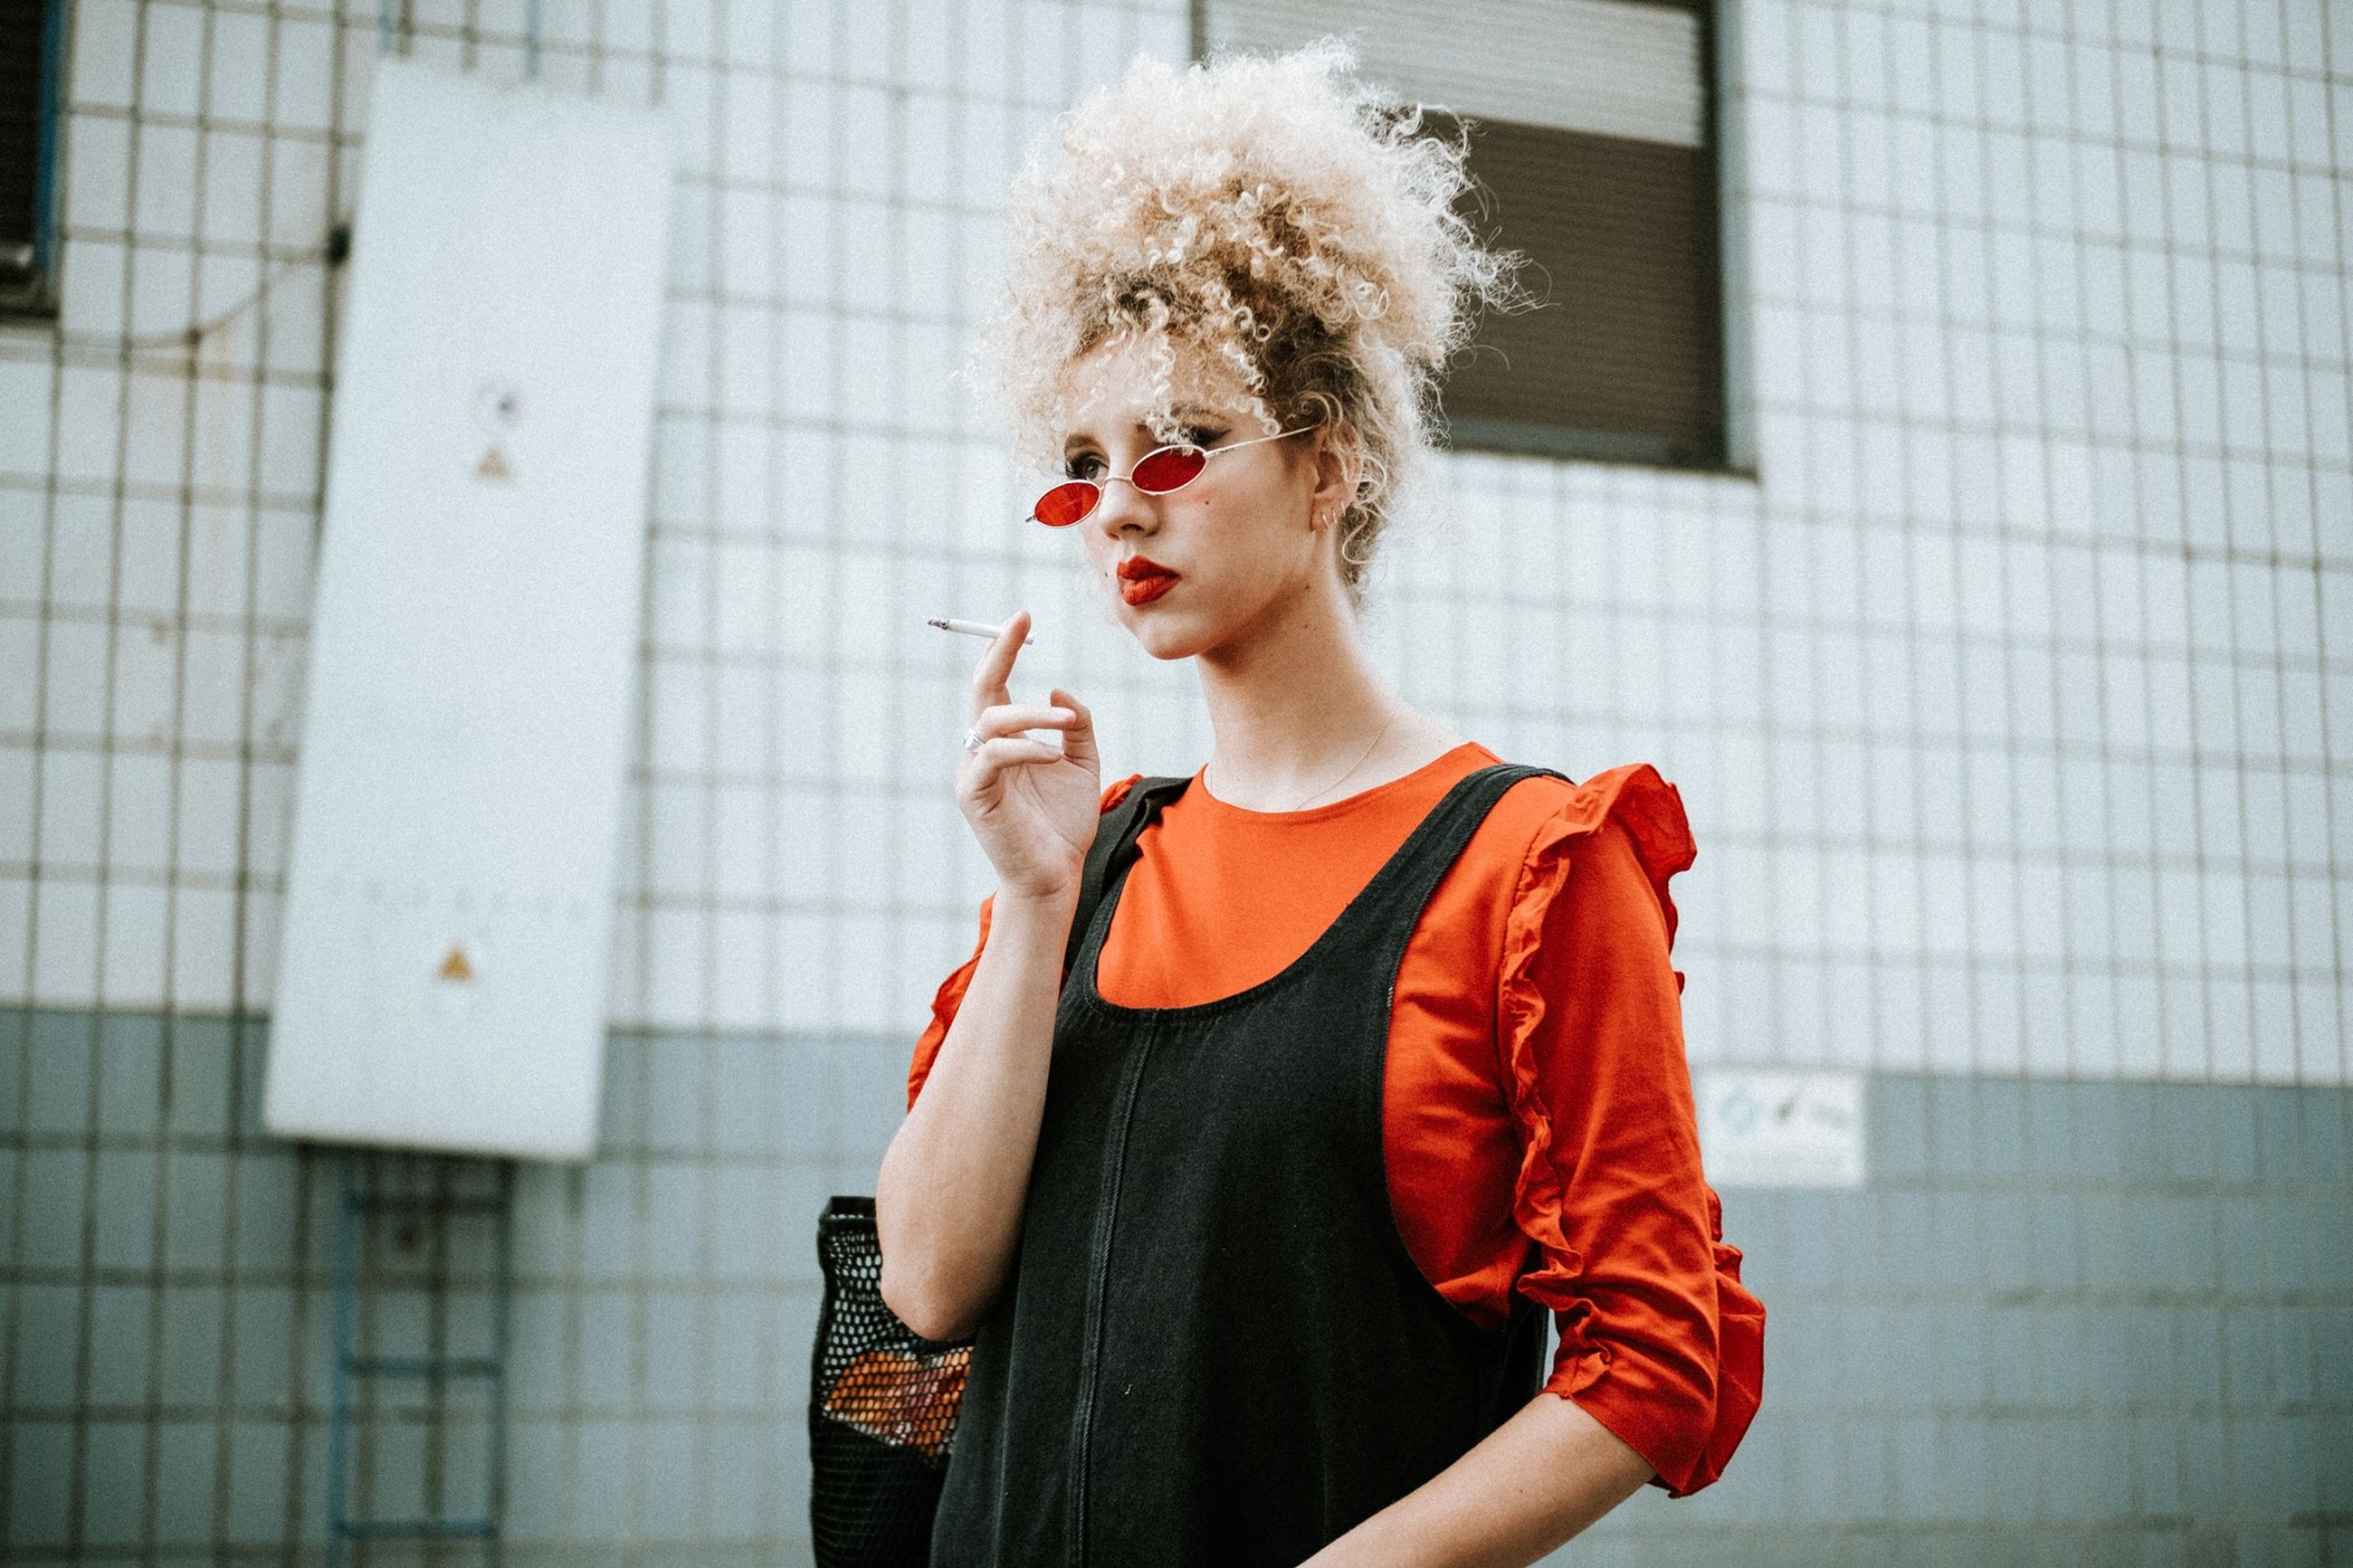 one person, cigarette, standing, curly hair, young adult, architecture, smoking issues, lifestyles, hair, hairstyle, adult, real people, portrait, women, casual clothing, bad habit, fashion, beautiful woman, outdoors